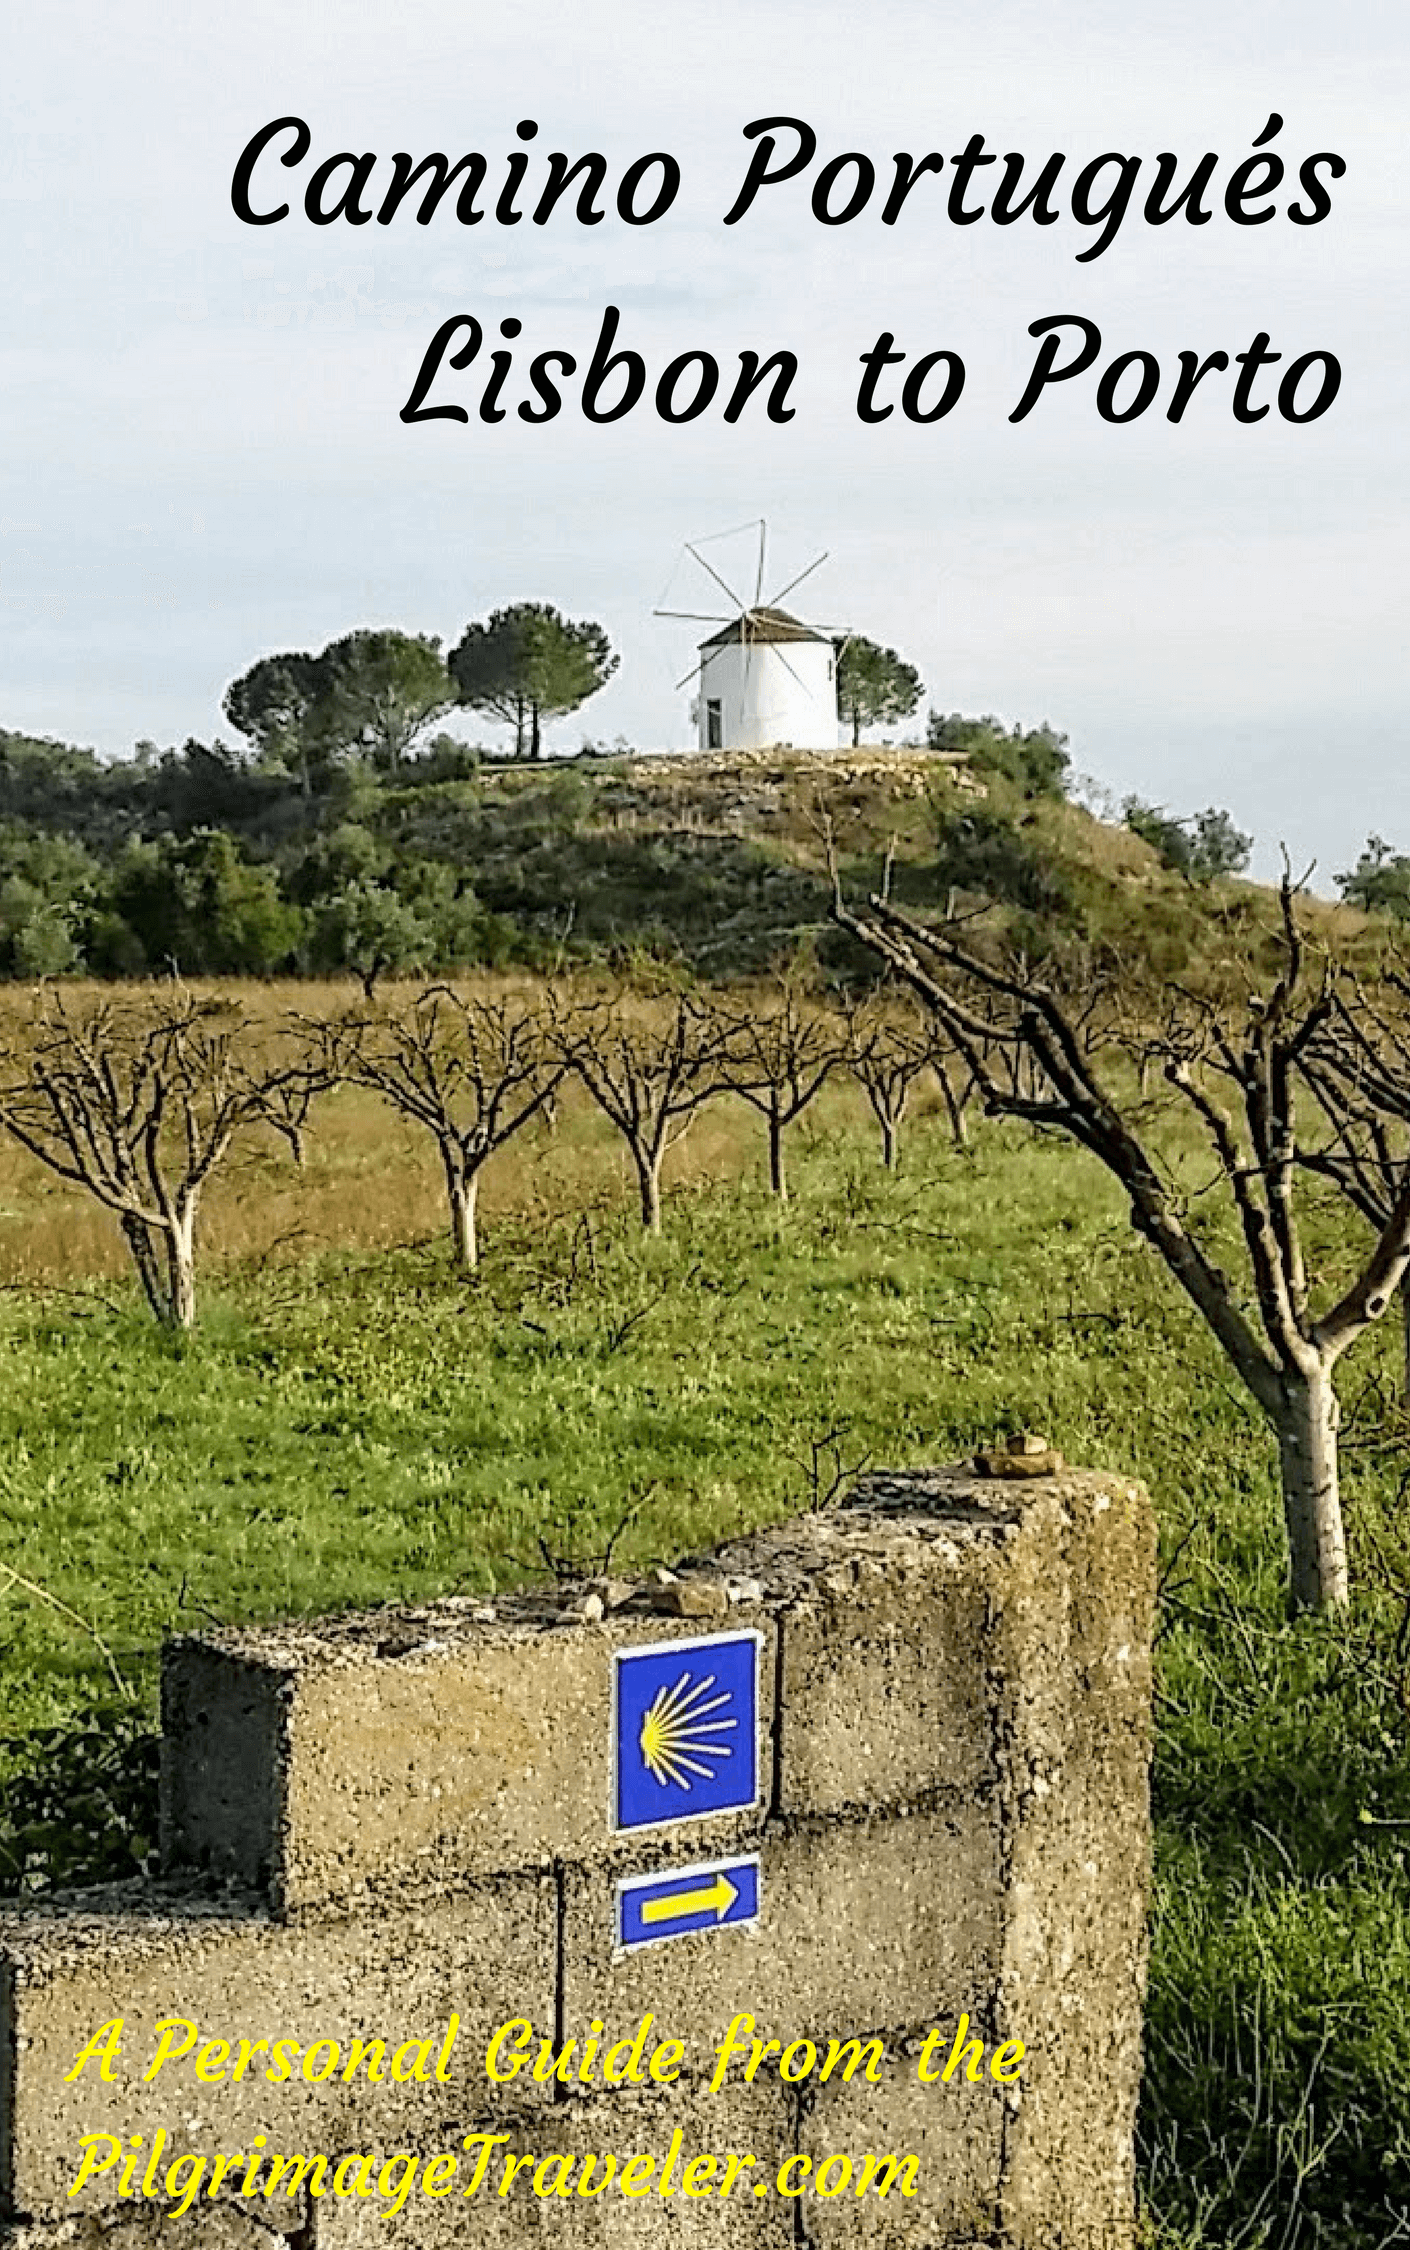 Camino Portugués Guide, Lisbon to Porto Downloadable EBook